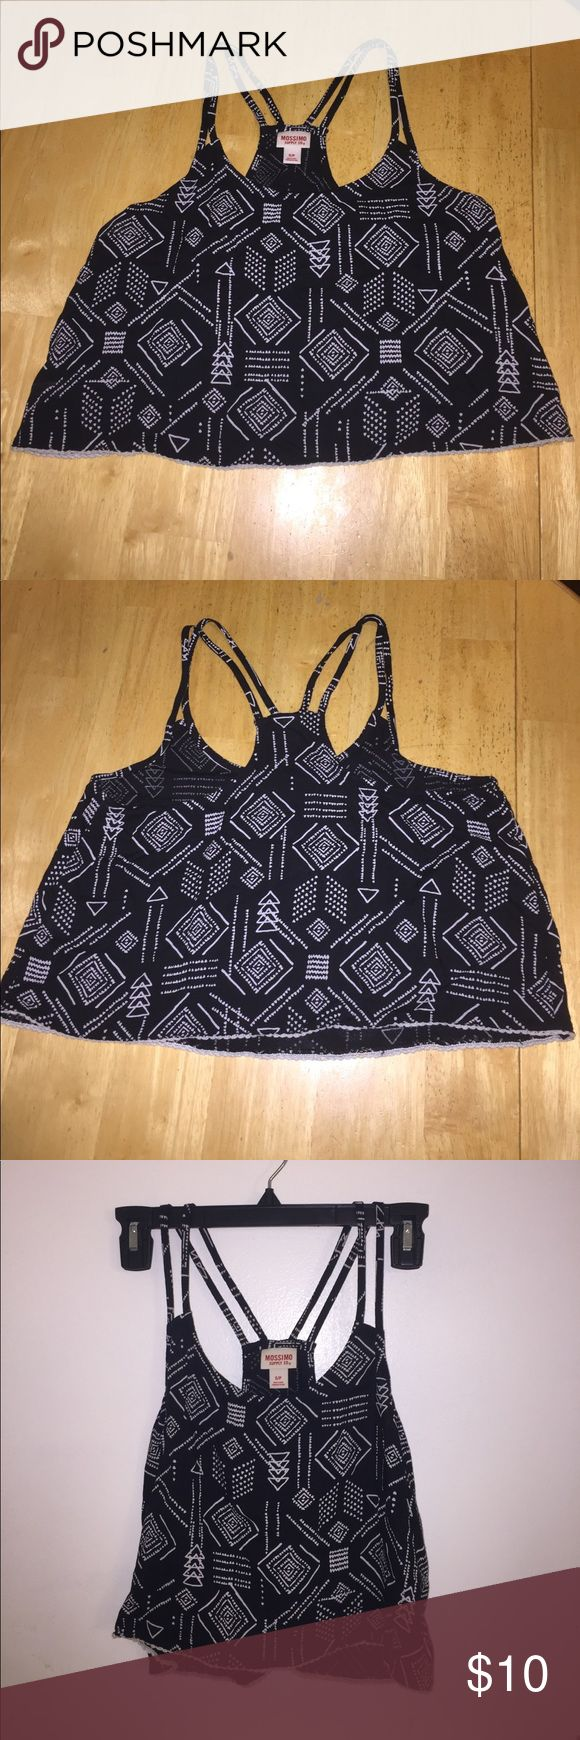 Black and white flowy crop top Black and white Aztec pattern flowy crop top!! Great condition!!! Mossimo Supply Co Tops Crop Tops